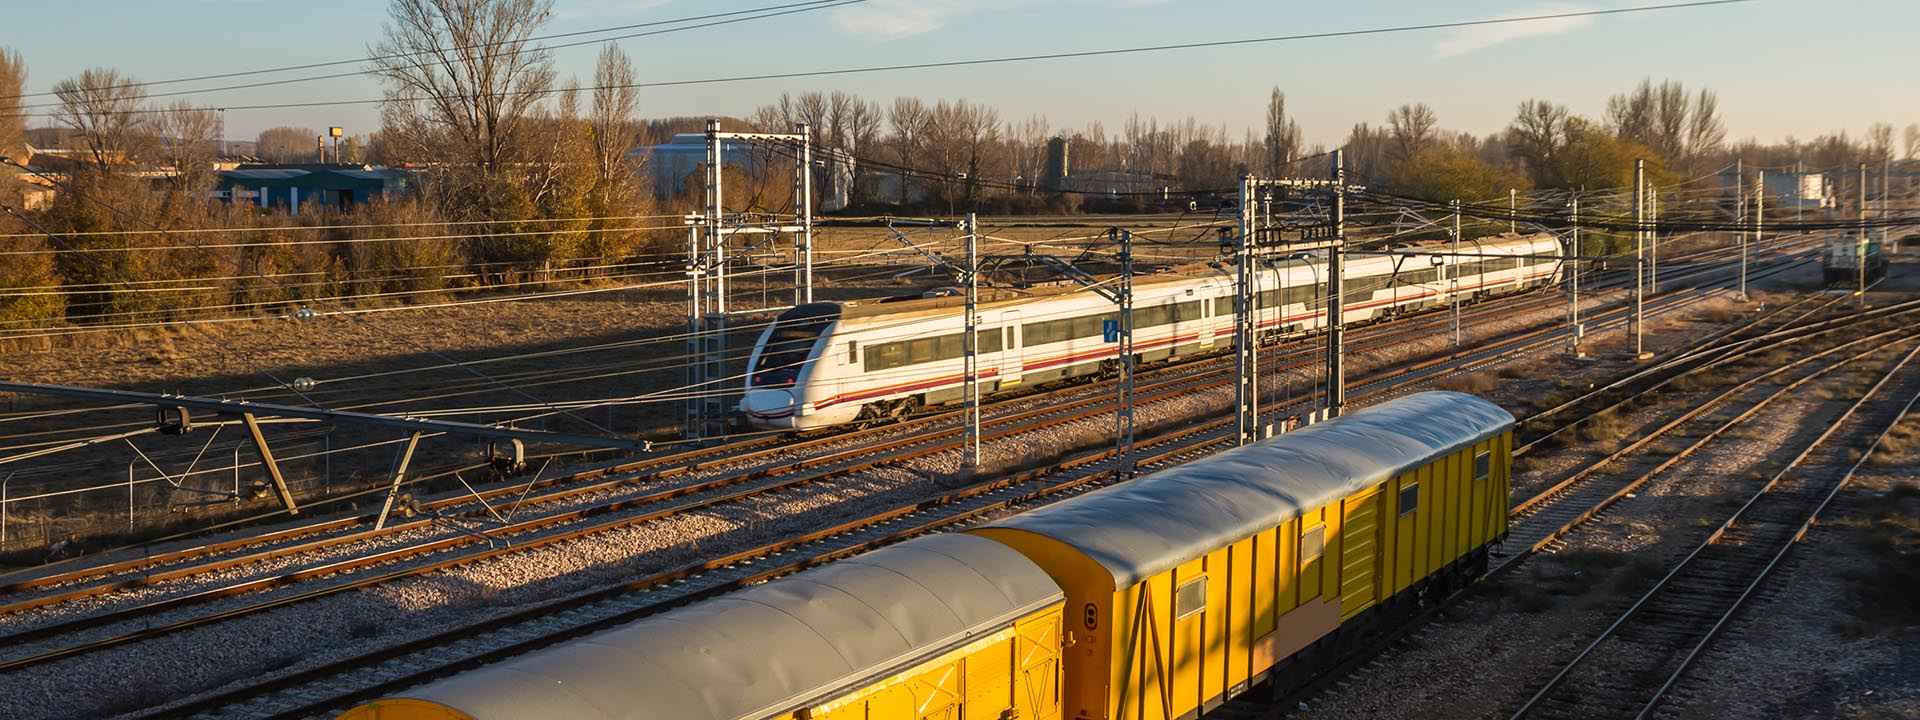 Ricardo expertise to support upgrades across the Spanish mainline network